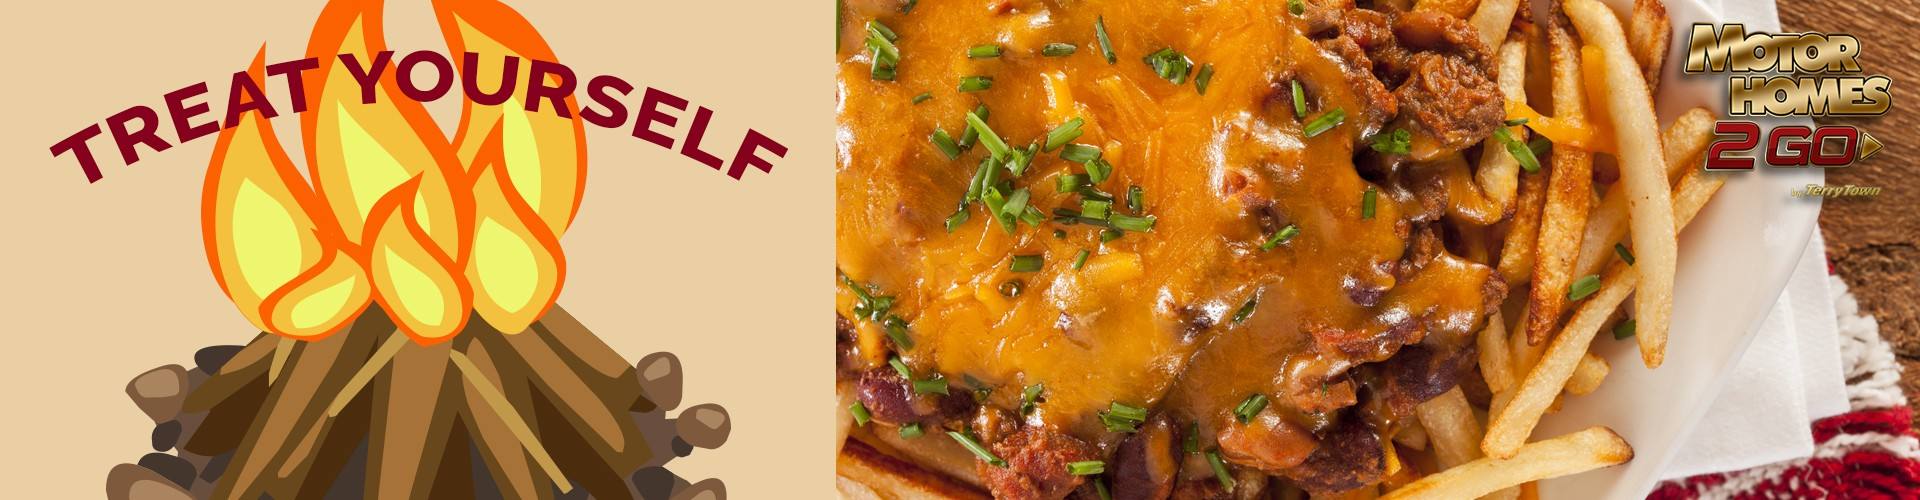 Treat yourself with campfire chili cheese fries